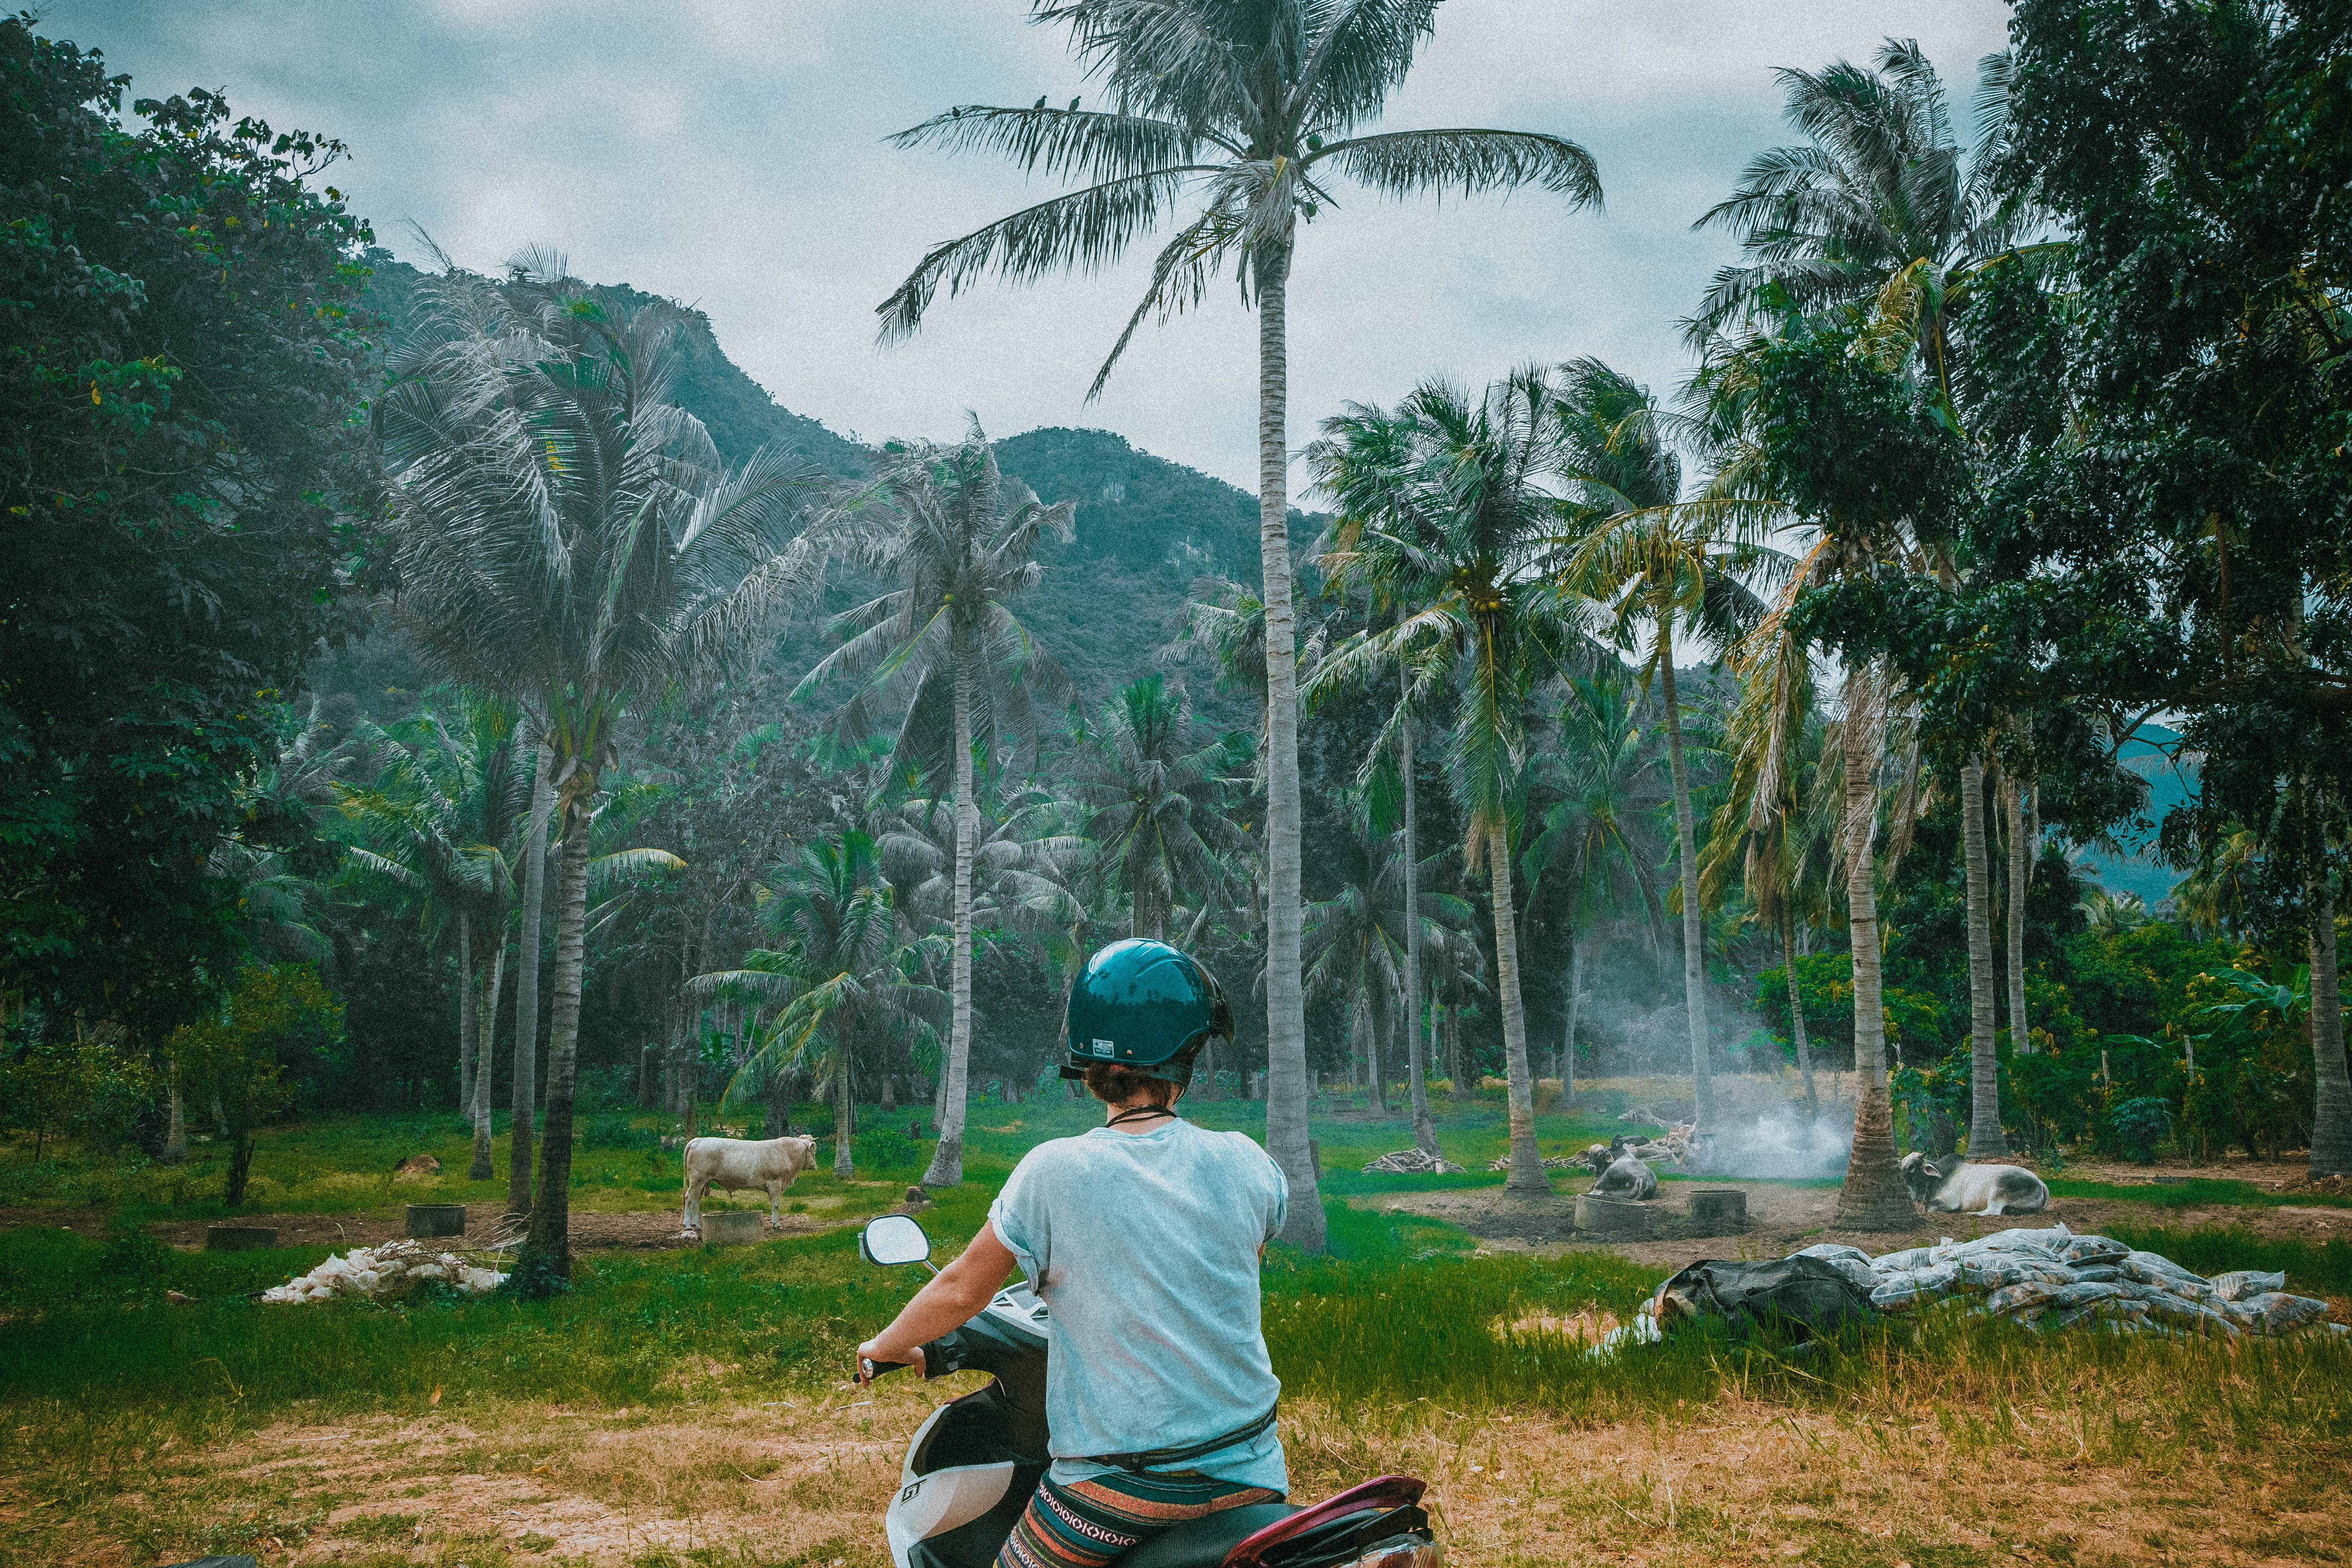 driving through hua hin spotting local villages motorcycle palms